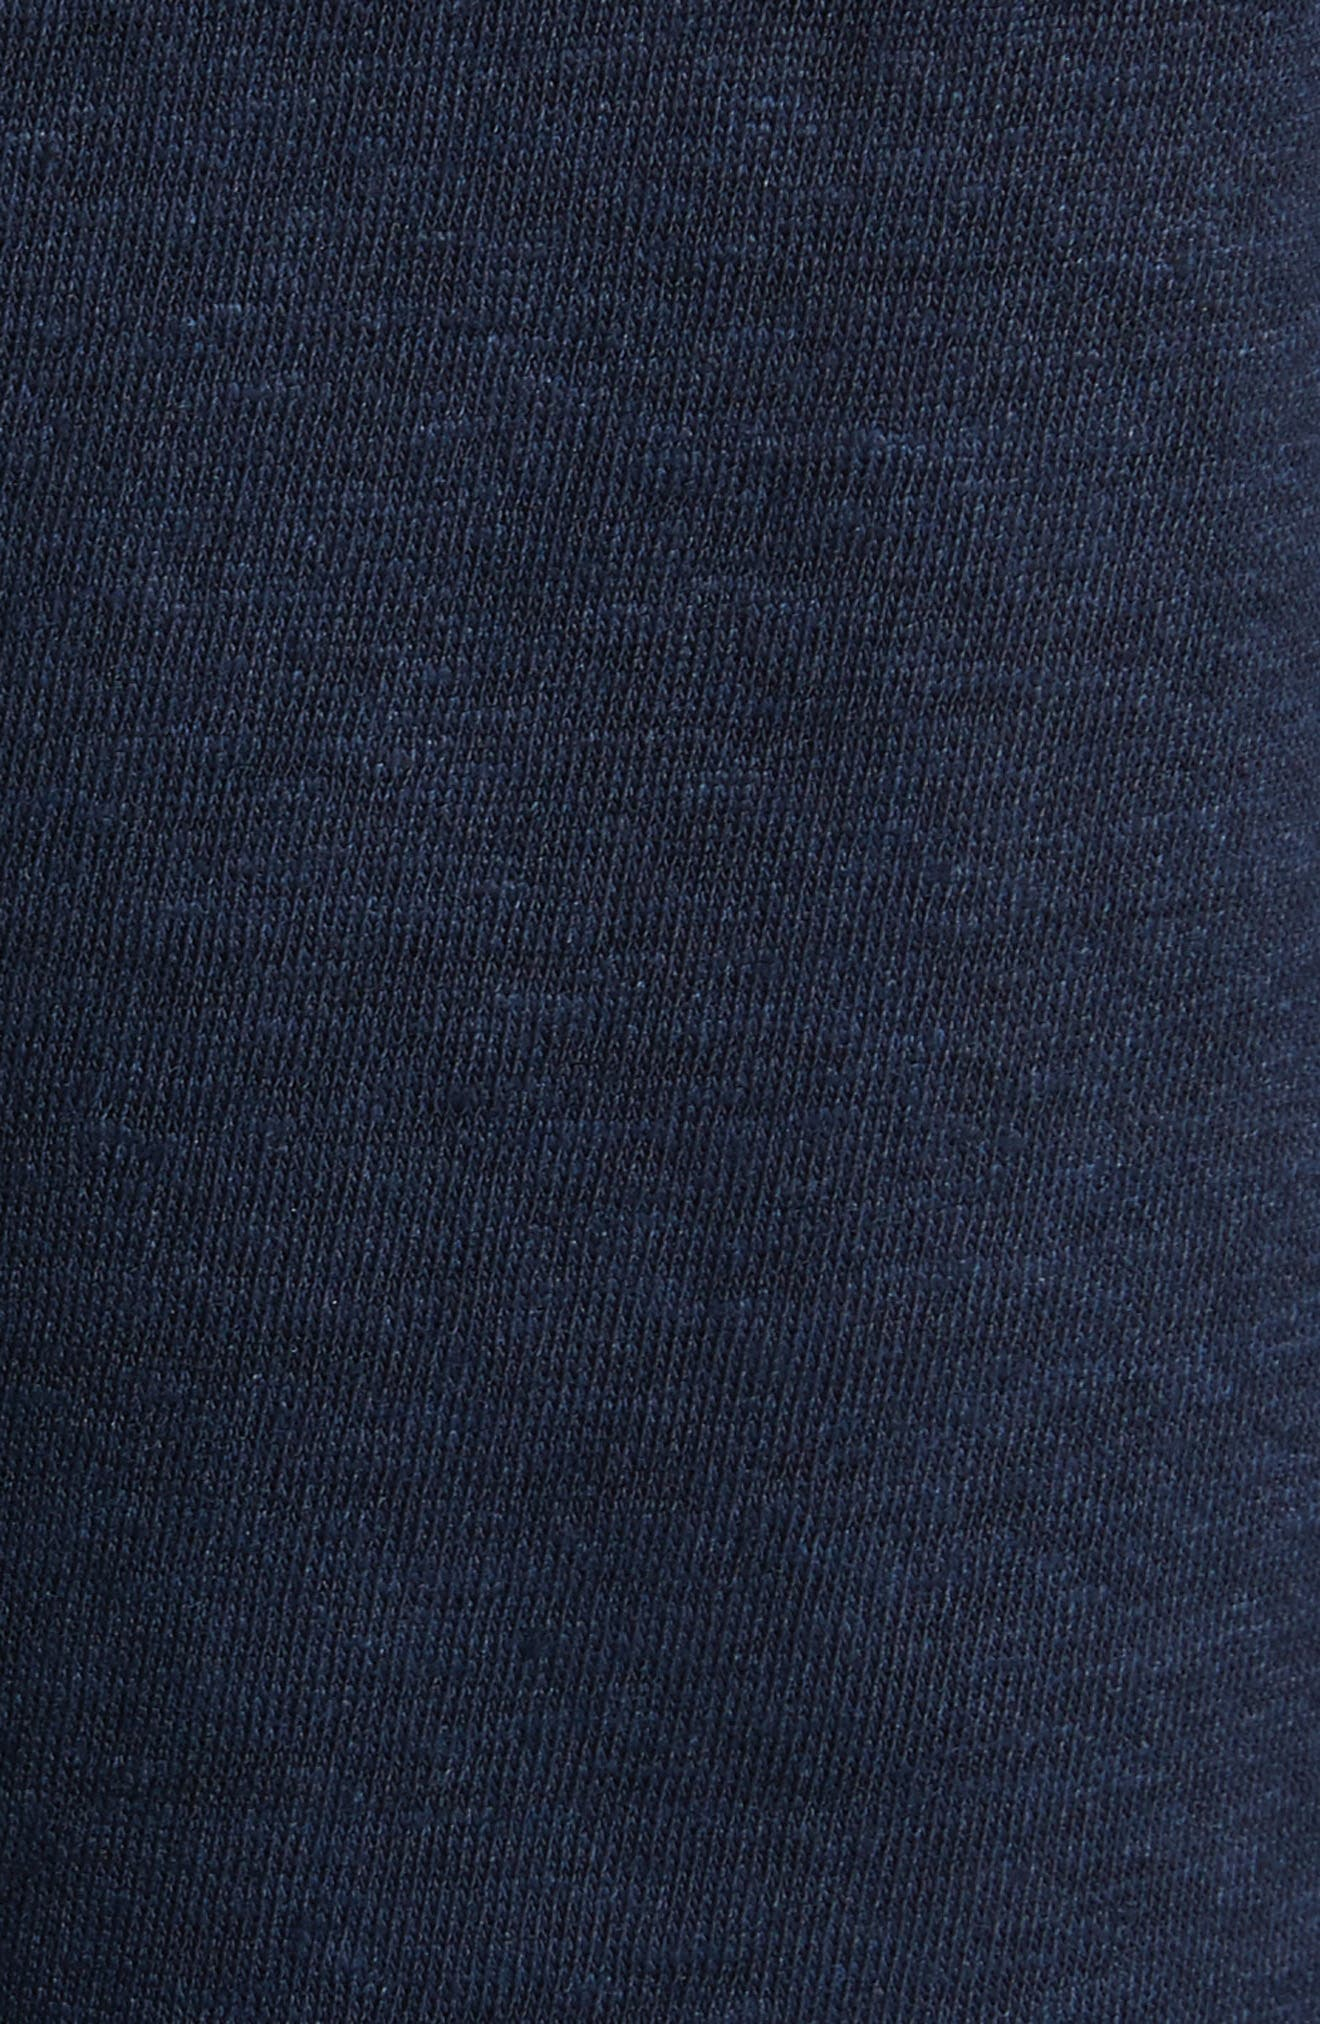 Embroidered Knit Dress,                             Alternate thumbnail 5, color,                             Tory Navy